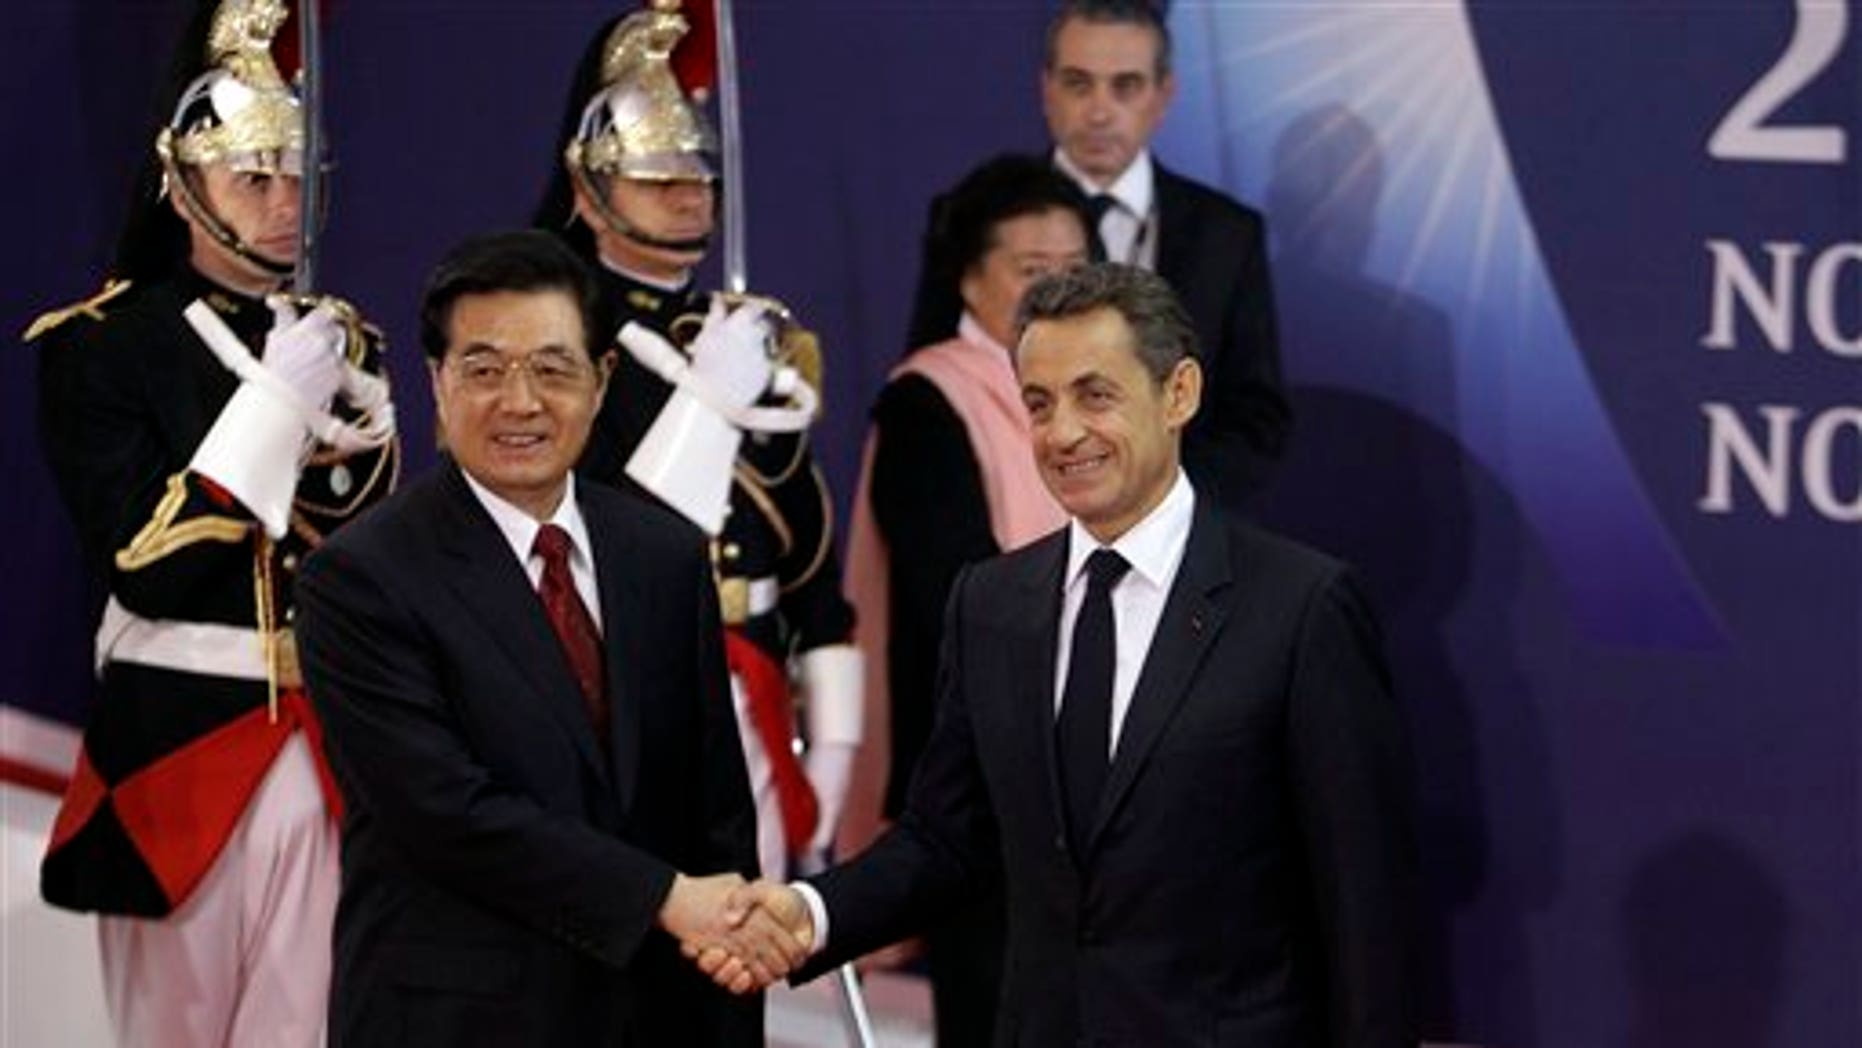 Nov. 2, 2011: French President Nicolas Sarkozy, right, shakes hands with China's President Hu Jintao during arrivals for the G20 summit in Cannes, France.